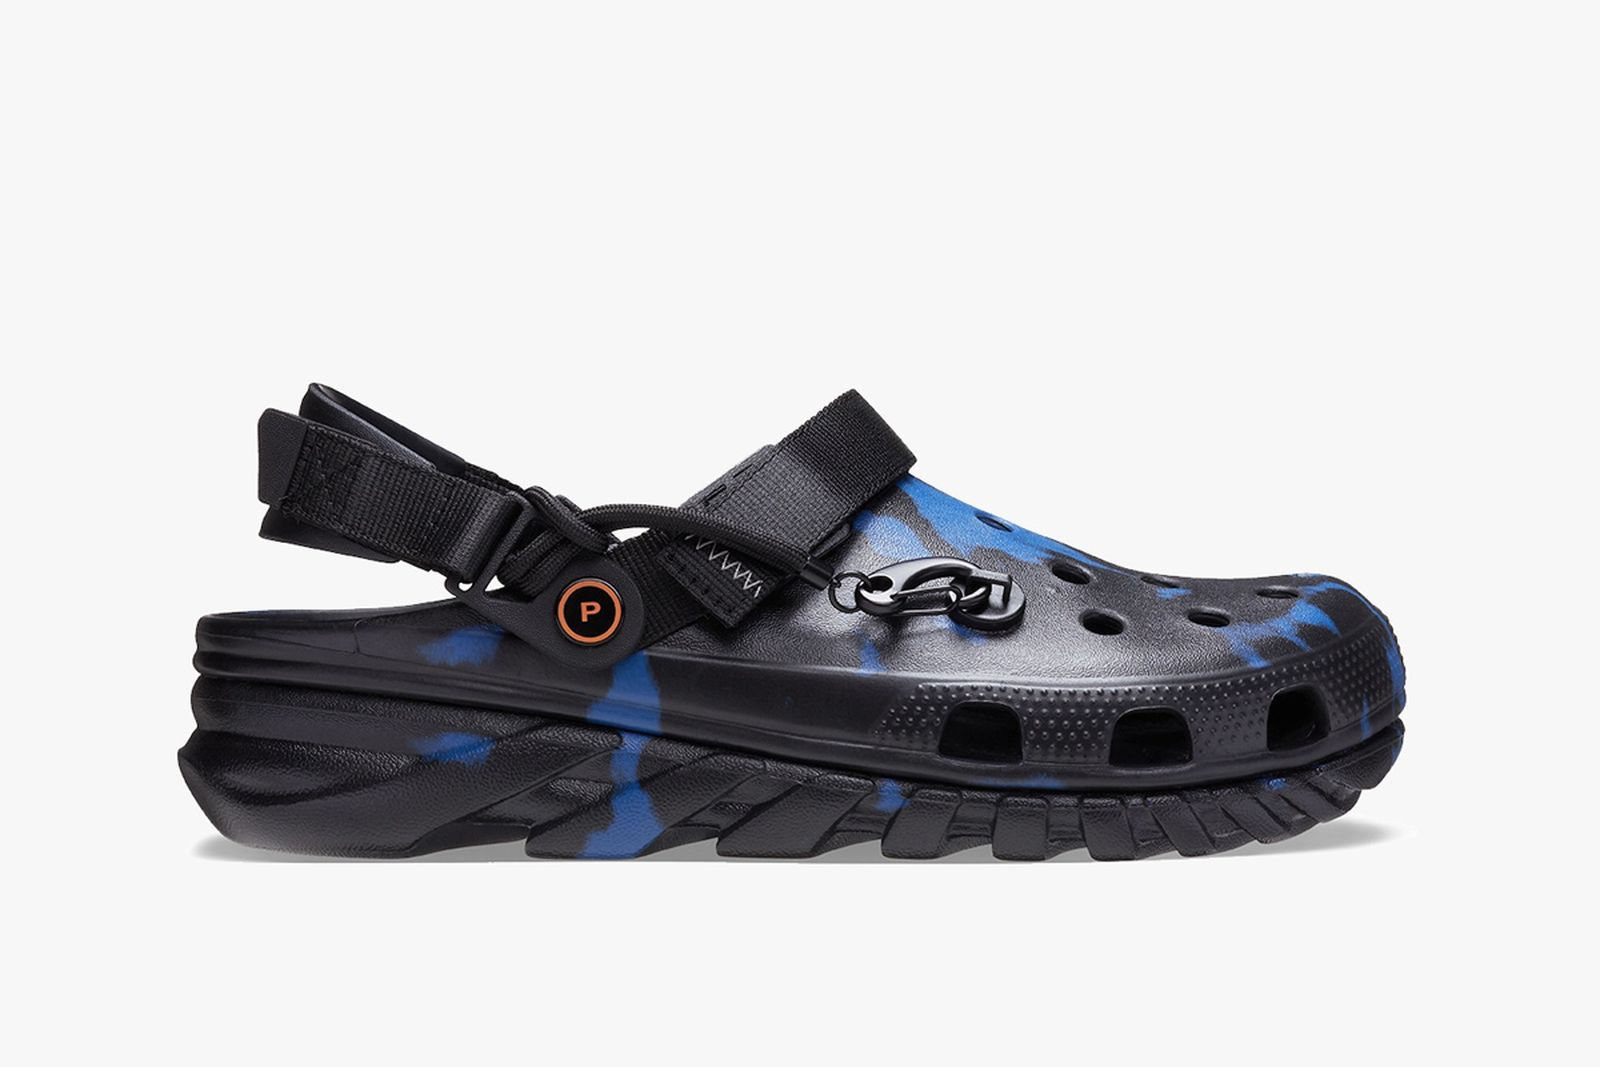 post-malone-crocs-duet-max-clog-release-date-price-01